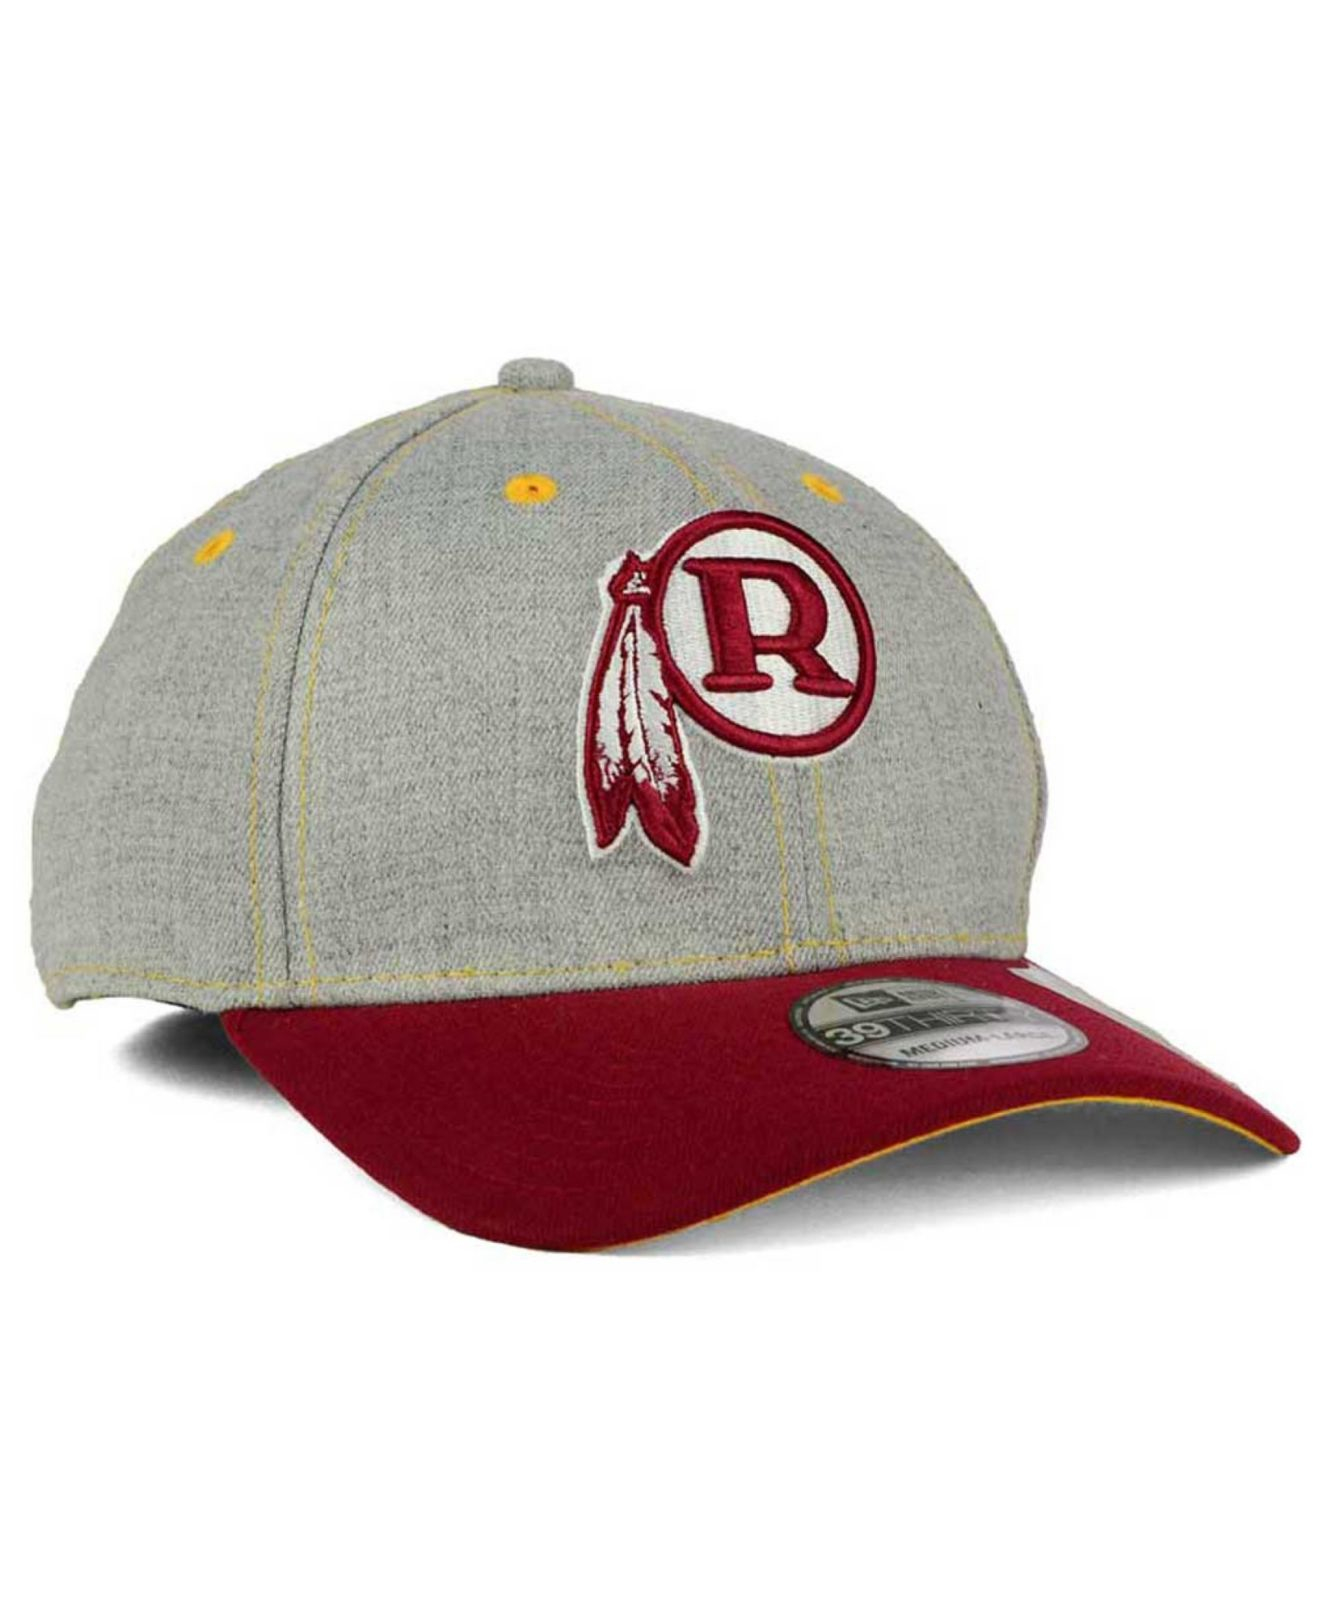 low cost 62b56 a5904 ... promo code for lyst ktz washington redskins change up heather 39thirty  cap in 4c939 61fb3